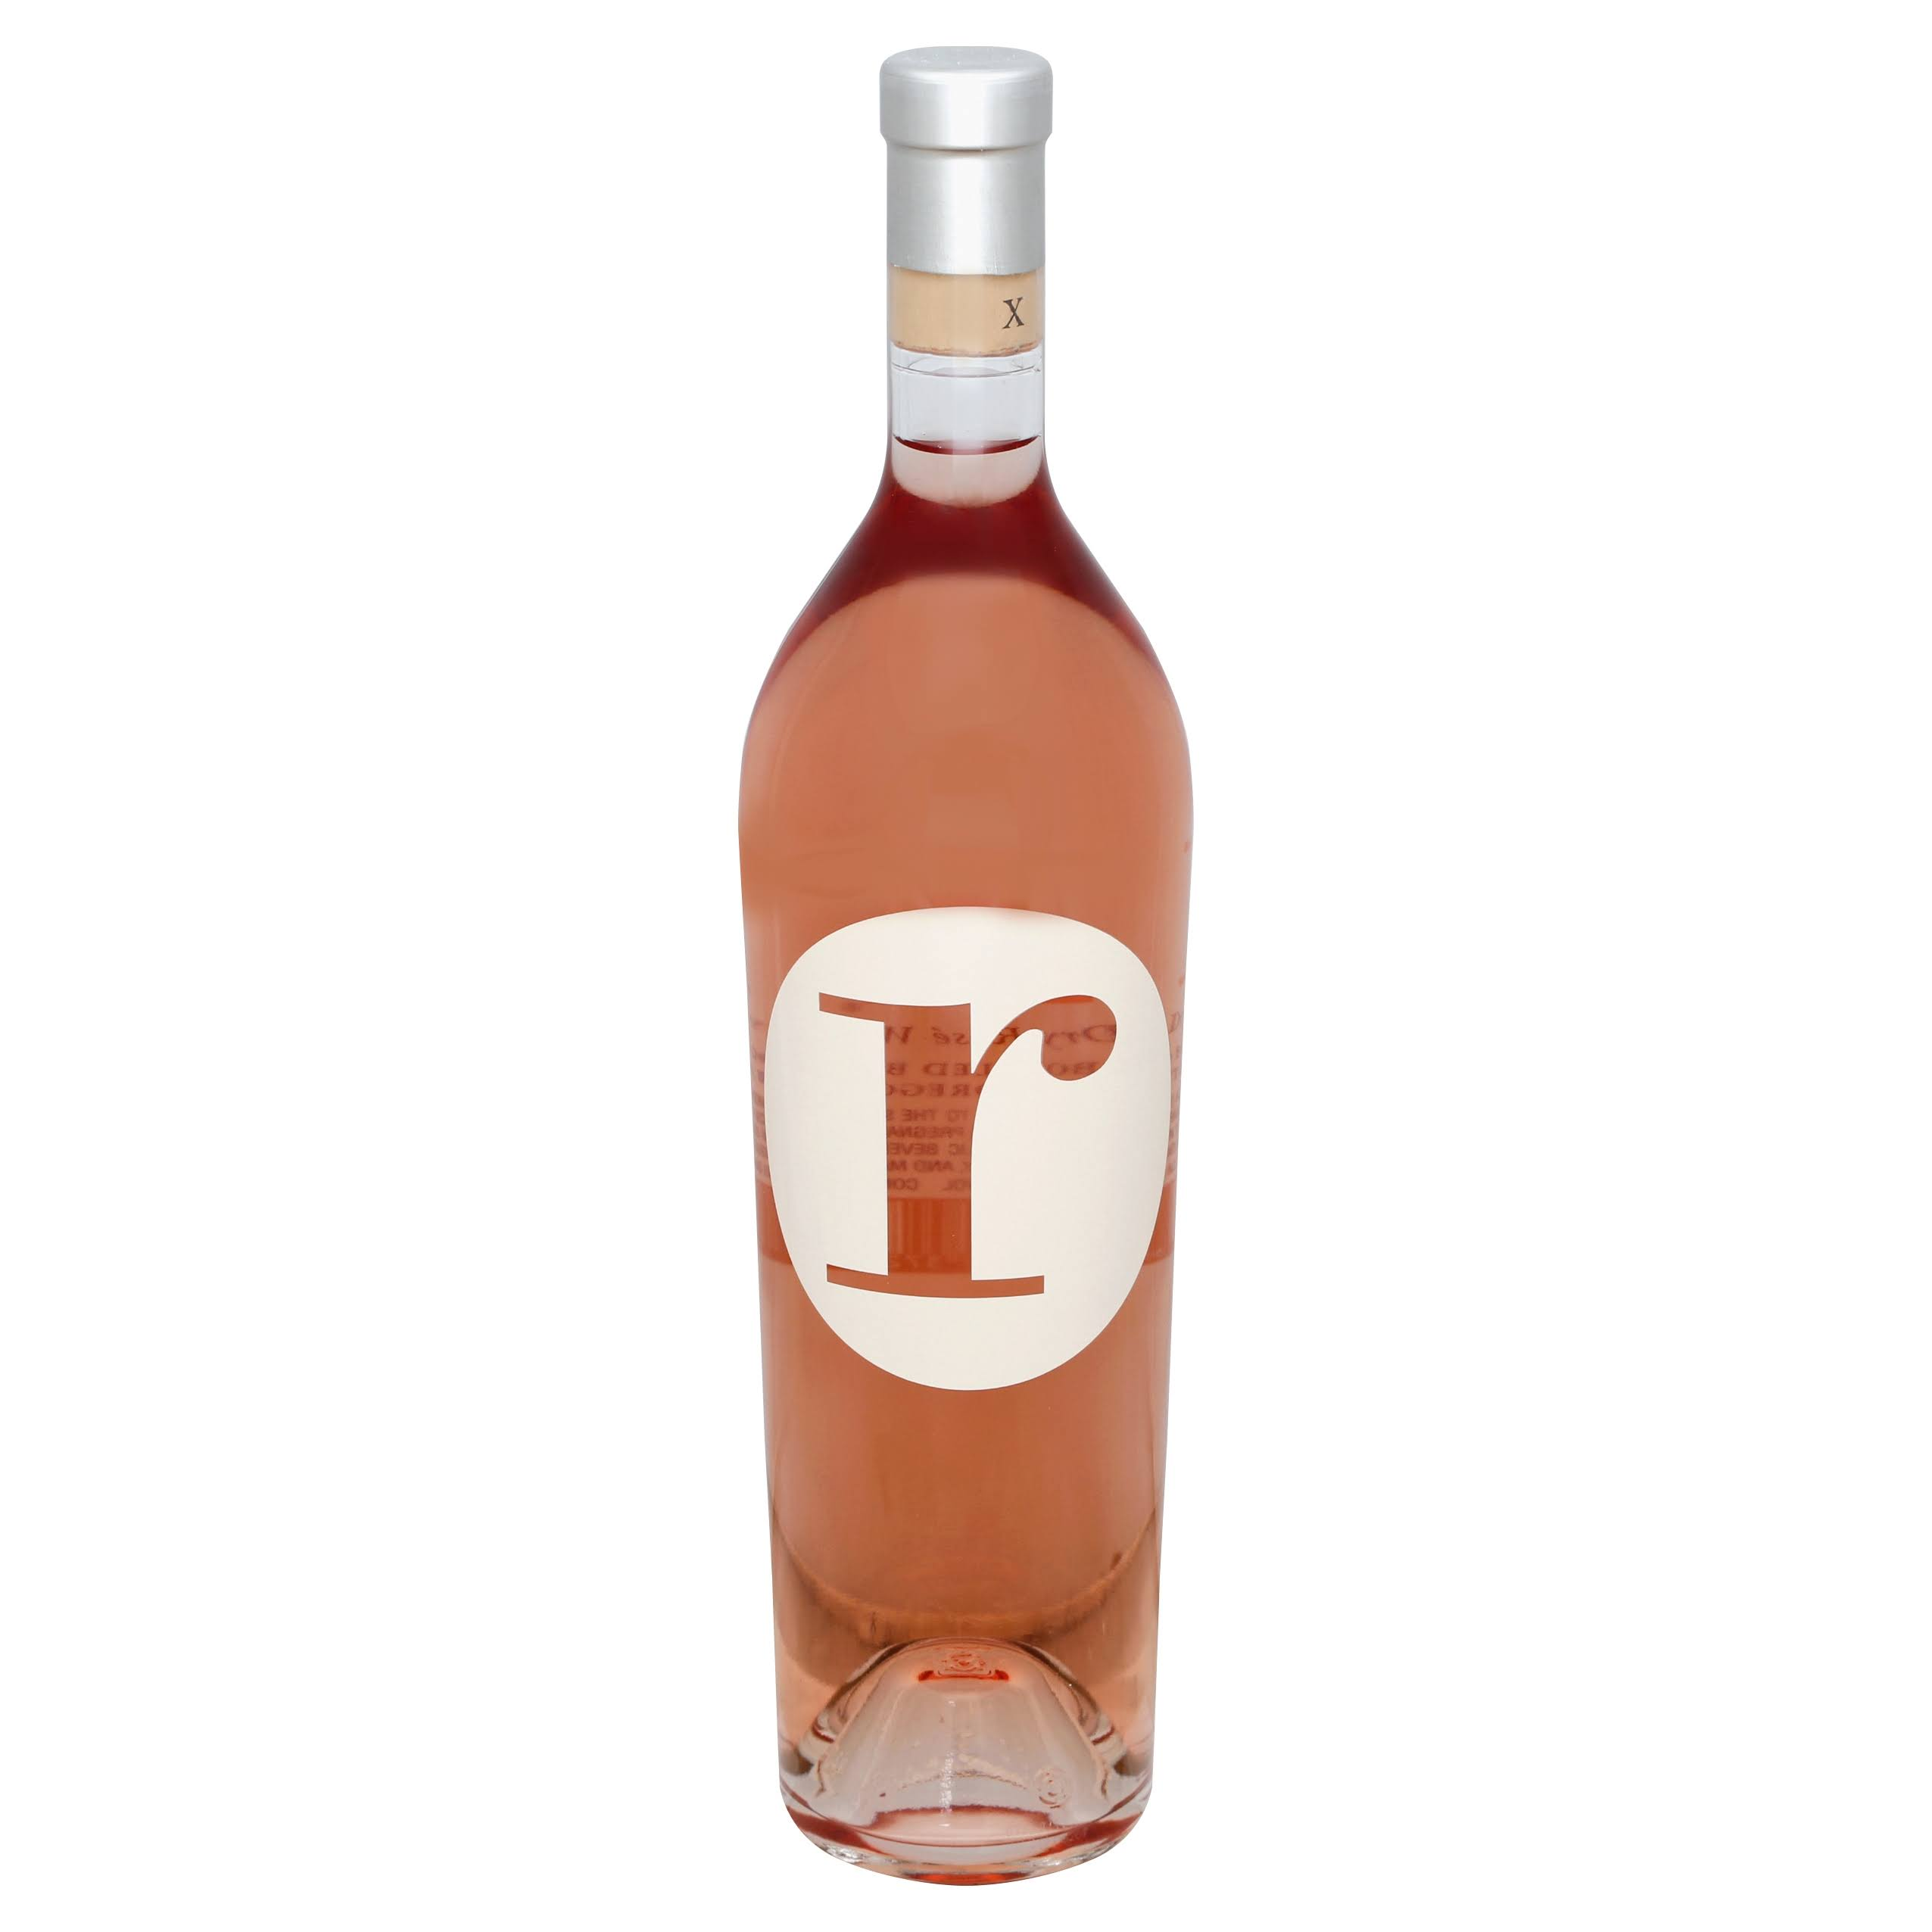 Domaine Serene R Rose - 750 ml bottle